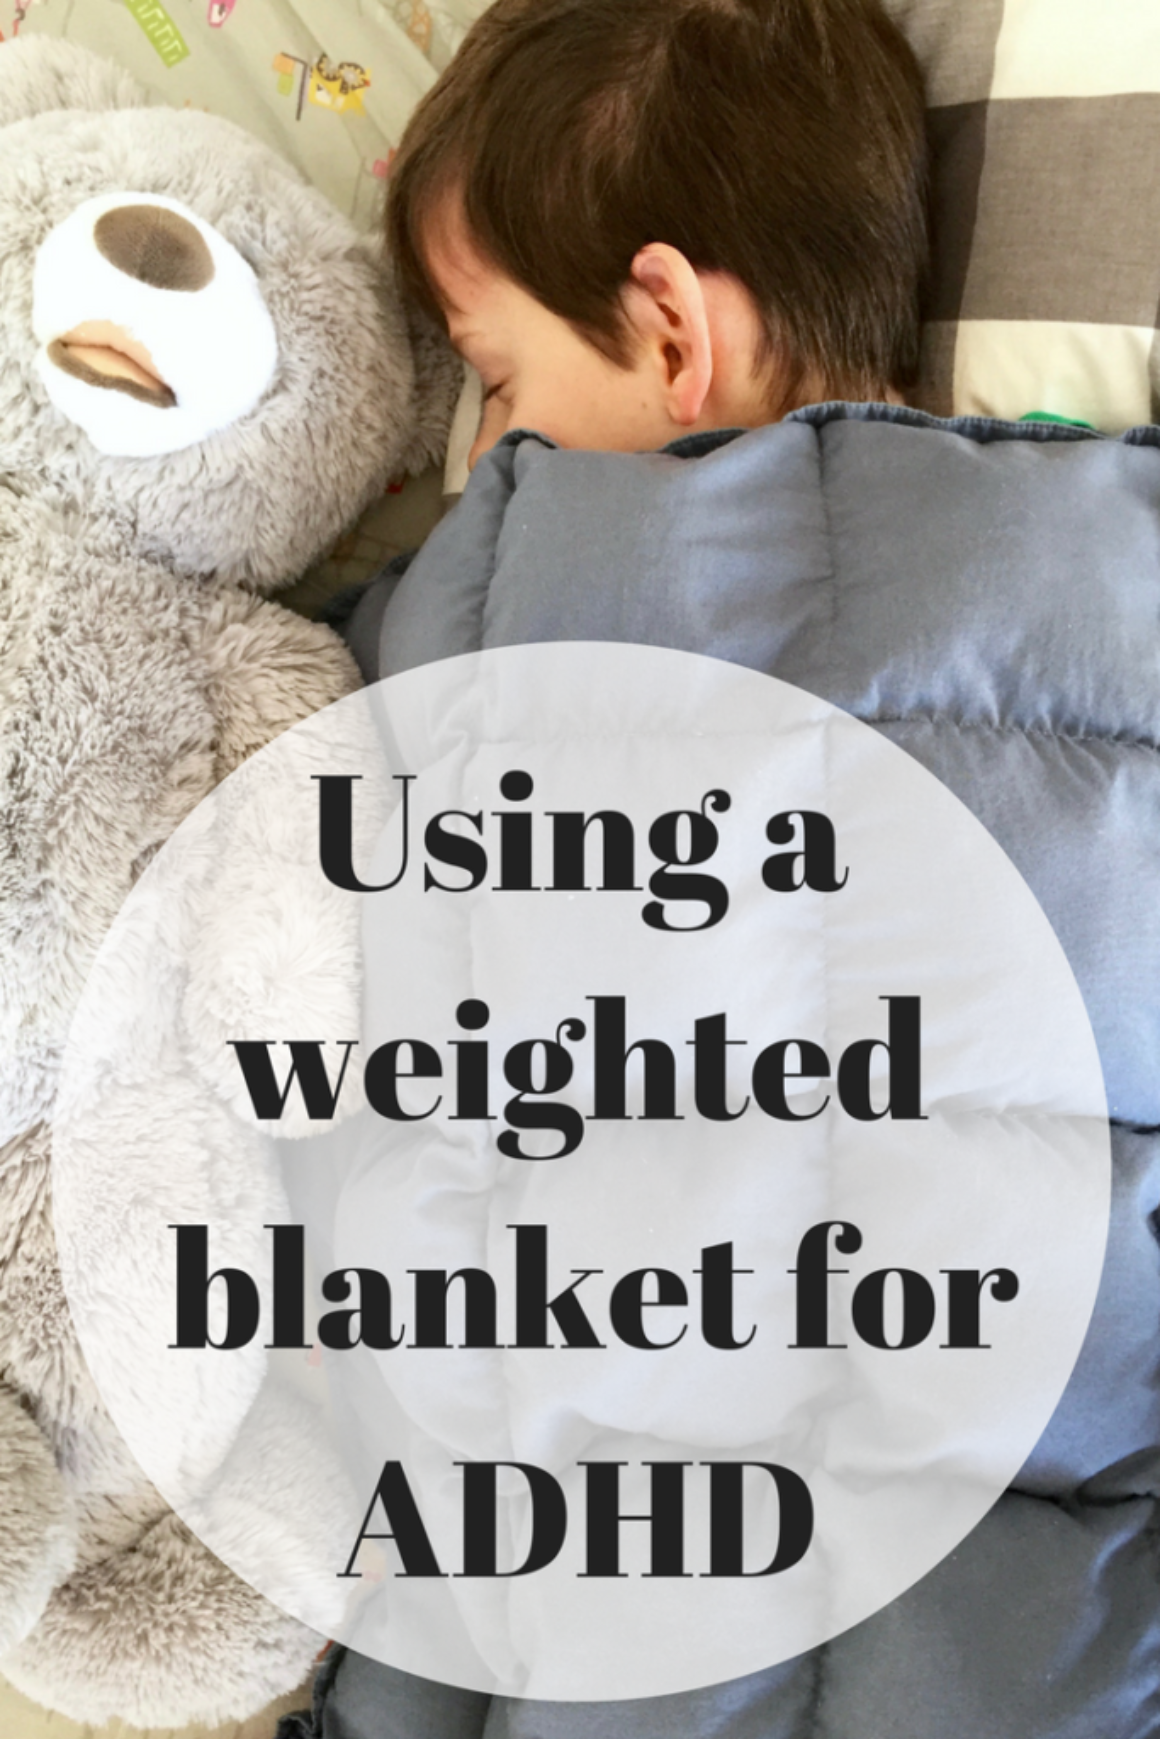 The benefits of weighted blankets are many for my son with ADHD. Our weighted blanket is the best alternative remedy we have tried. Weighted blankets are the best for anxiety in kids and helping them fall and stay asleep. Read about how we chose our weighted blanket and just how much it